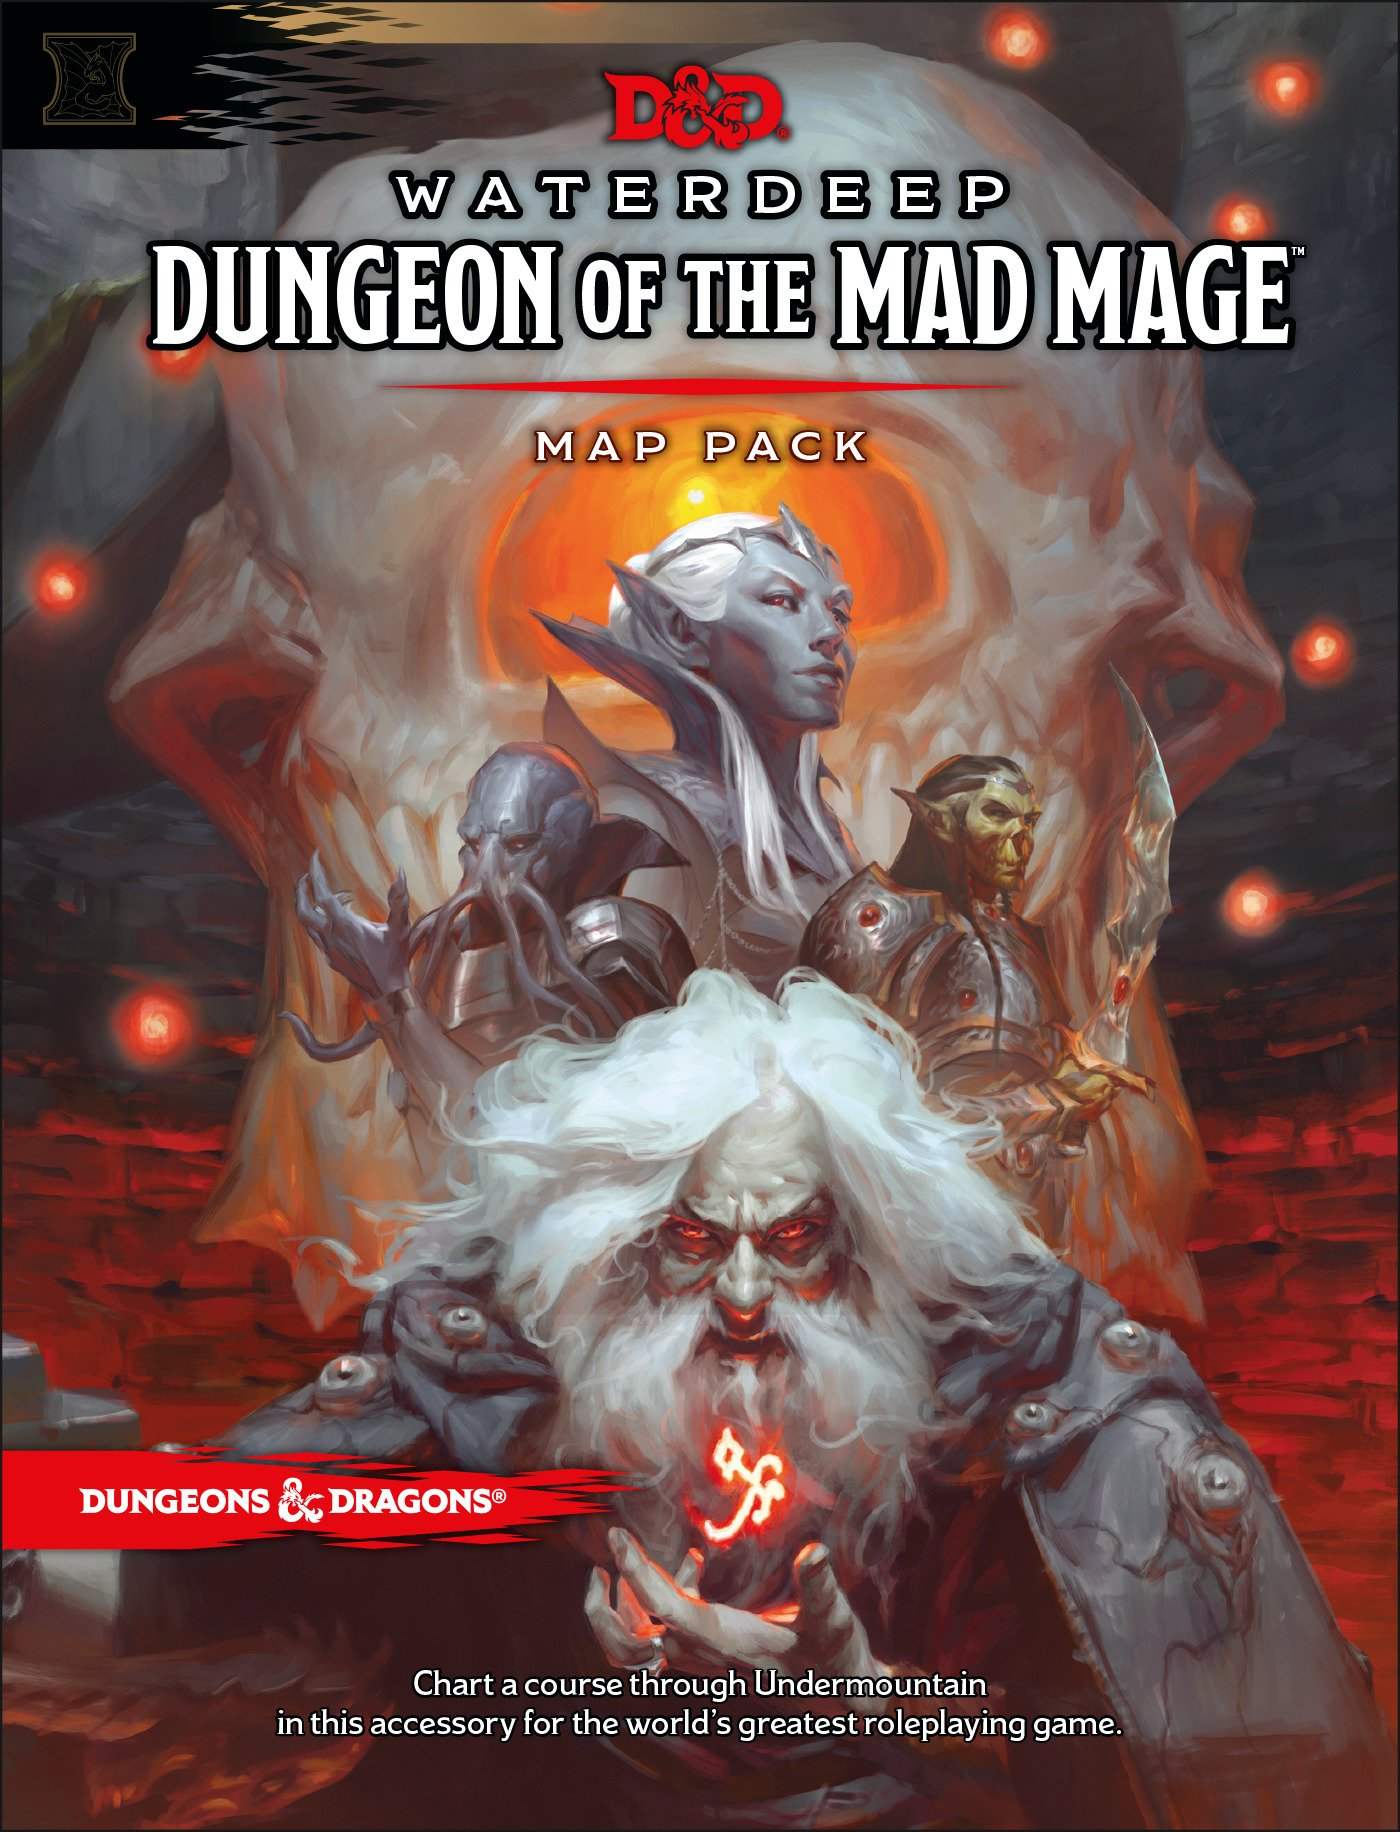 D&D Waterdeep Dungeon of the Mad Mage Map Pack PDF